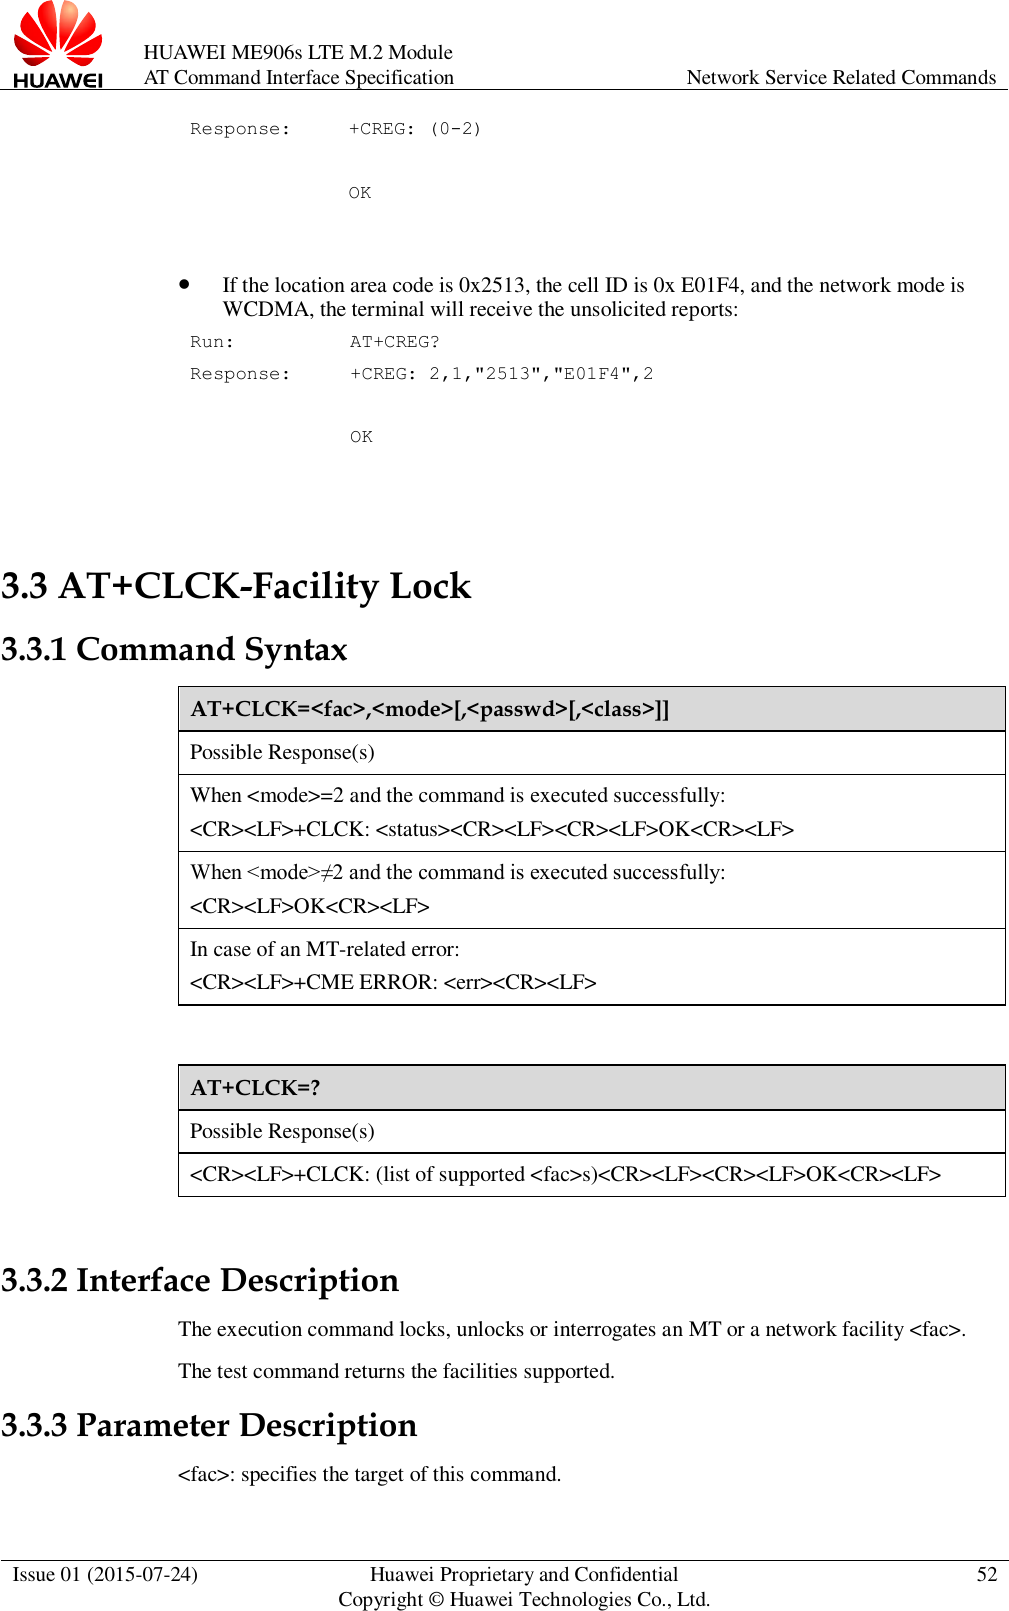 Huawei AT Command Interface Specification ME906s LTE Module